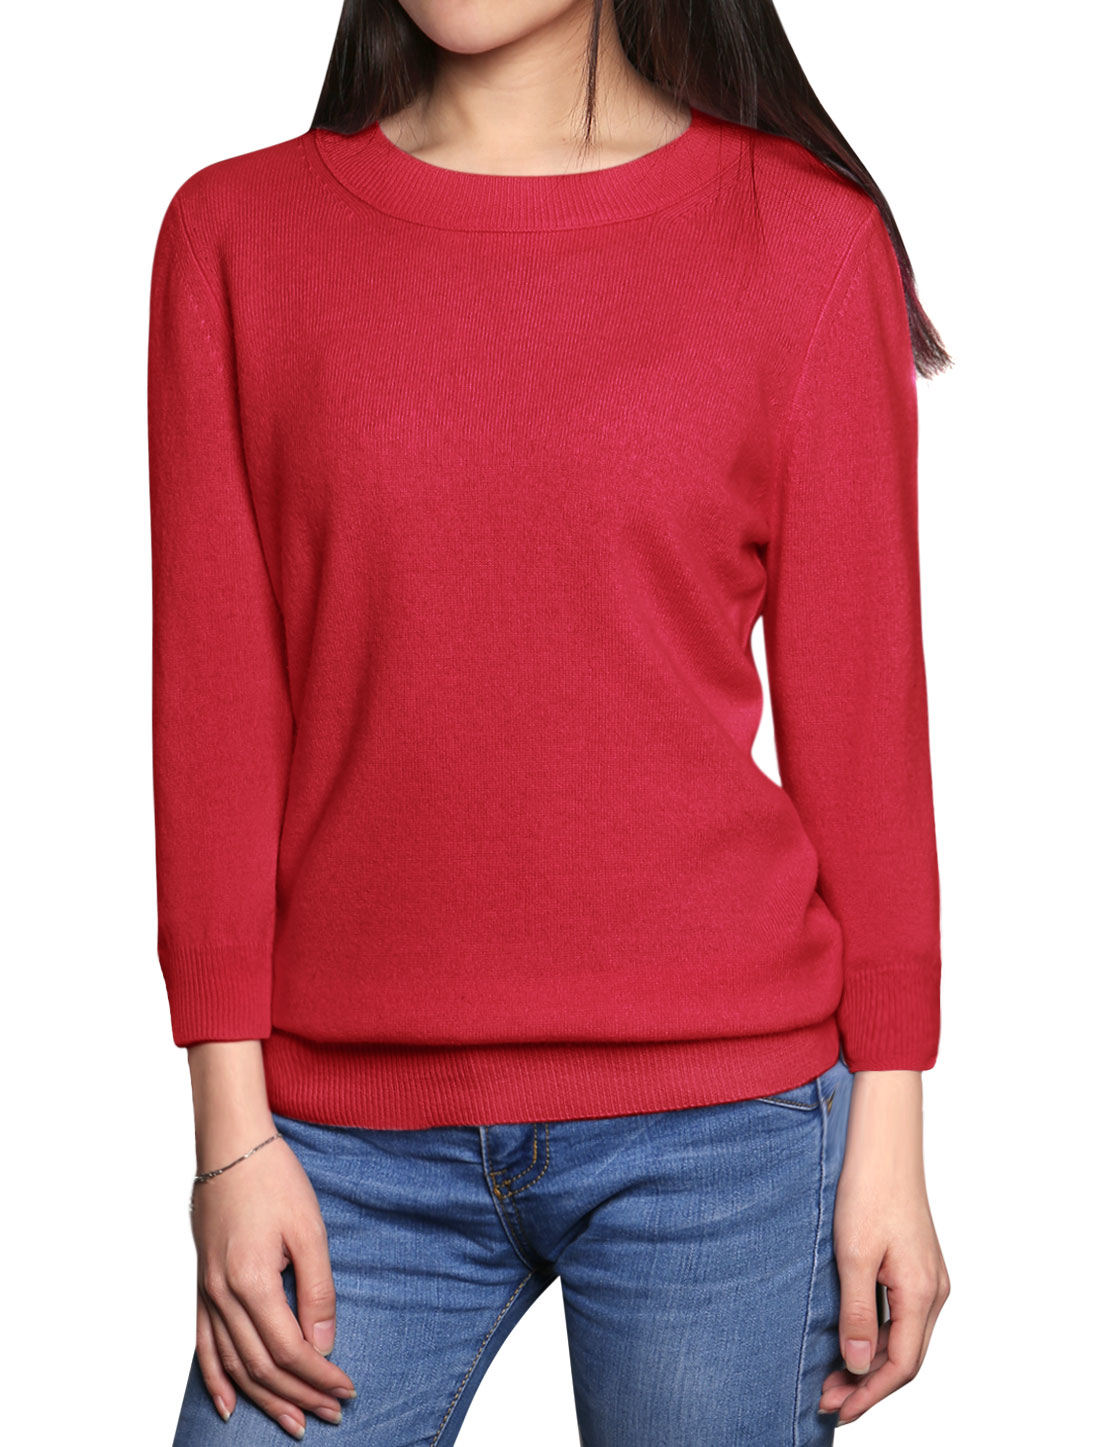 Women Ribbed Trim 3/4 Sleeves Cashmere Sweater Red L